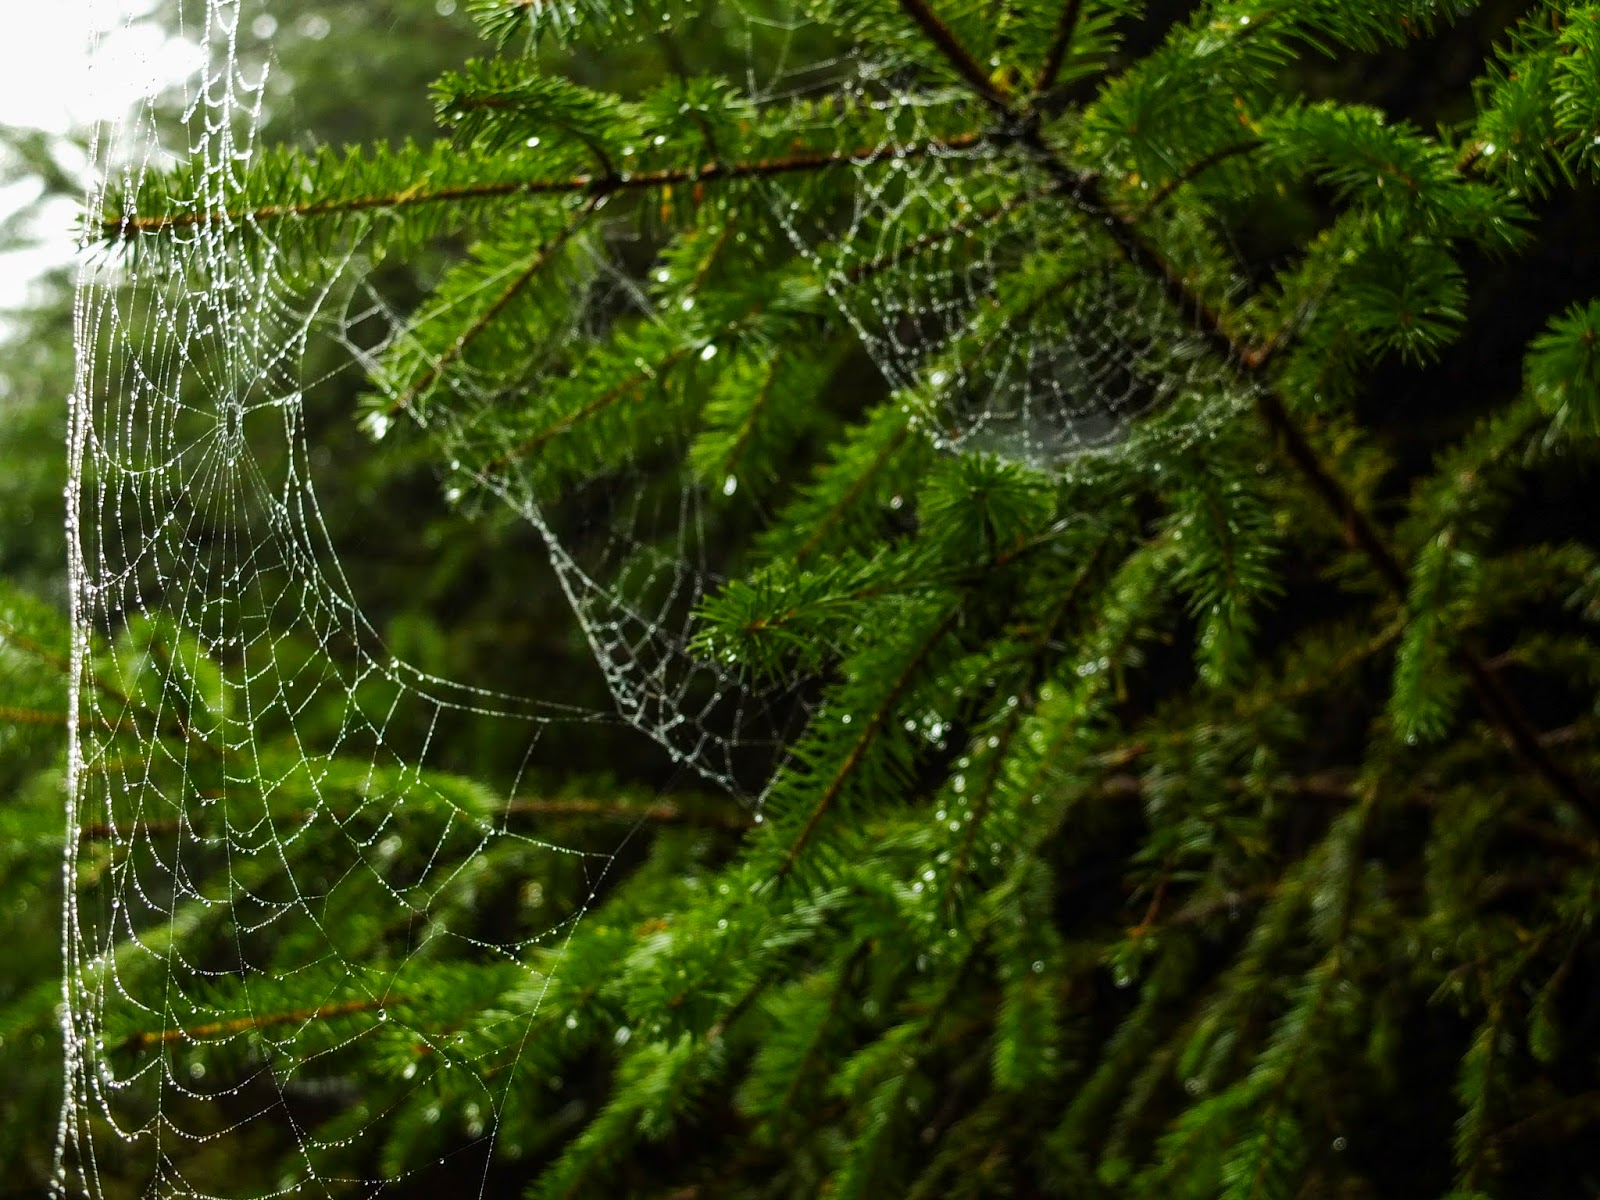 Spider webs on conifer branches in the woods.